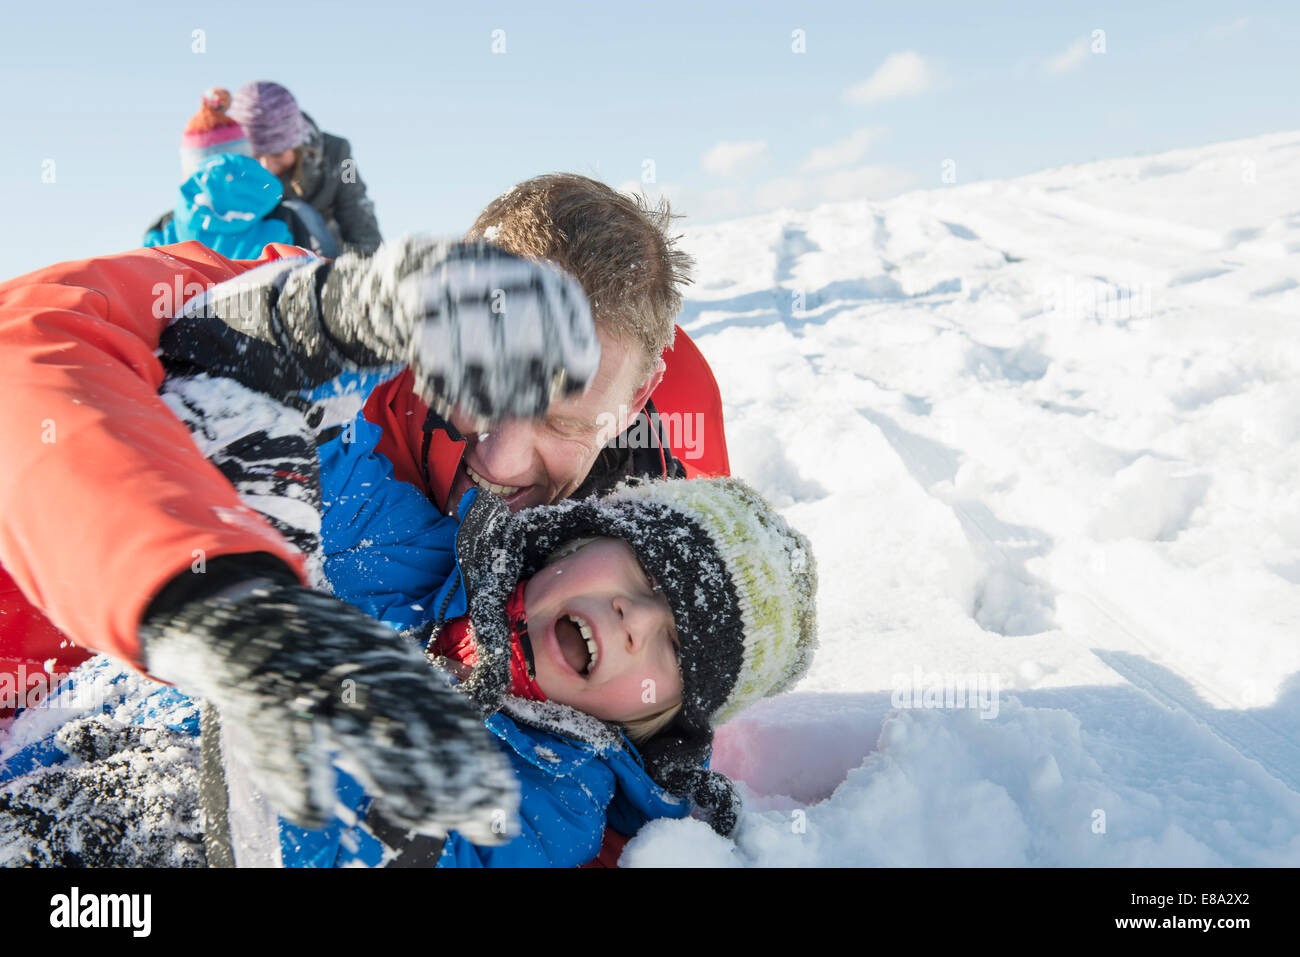 Family tussle in snow, smiling, Bavaria, Germany Stock Photo